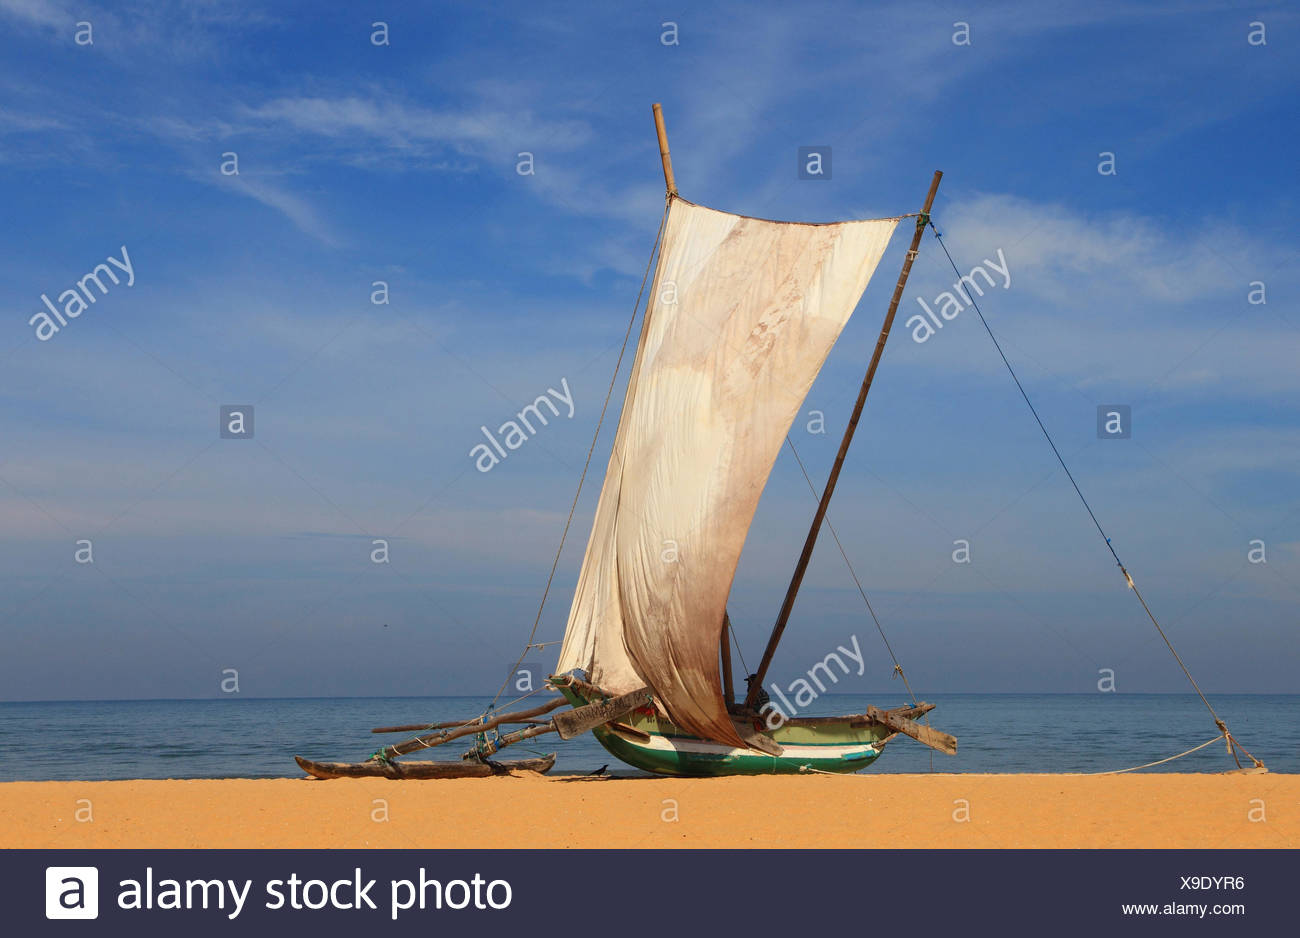 outrigger boat with set sail on the beach of Negombo, Sri Lanka - Stock Image